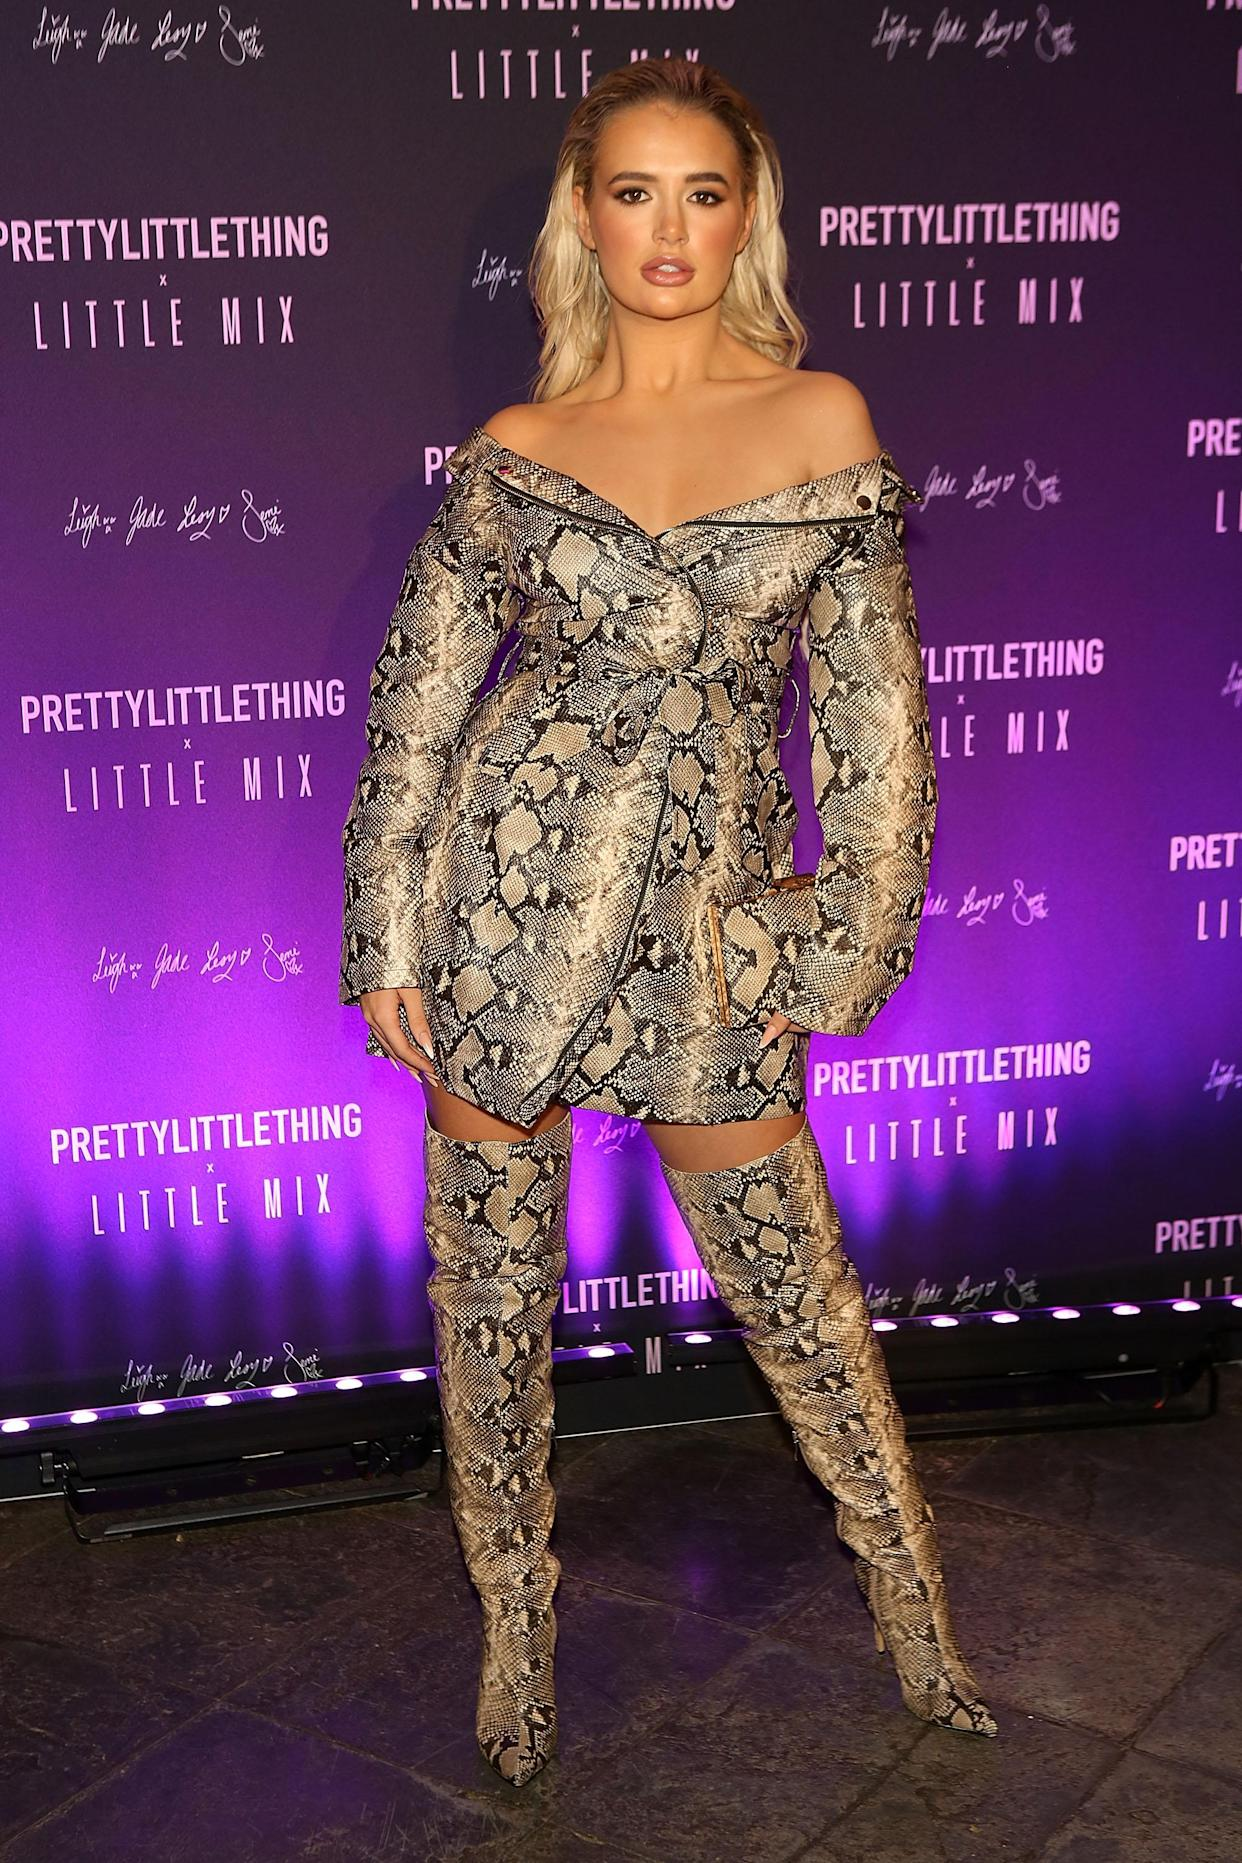 BANBURY, ENGLAND - NOVEMBER 06:  Molly-Mae Hague attends the launch of the PrettyLittleThing x Little Mix collection at Aynhoe Park House on November 6, 2019 in Banbury, England.  (Photo by David M. Benett/Dave Benett/Getty Images)